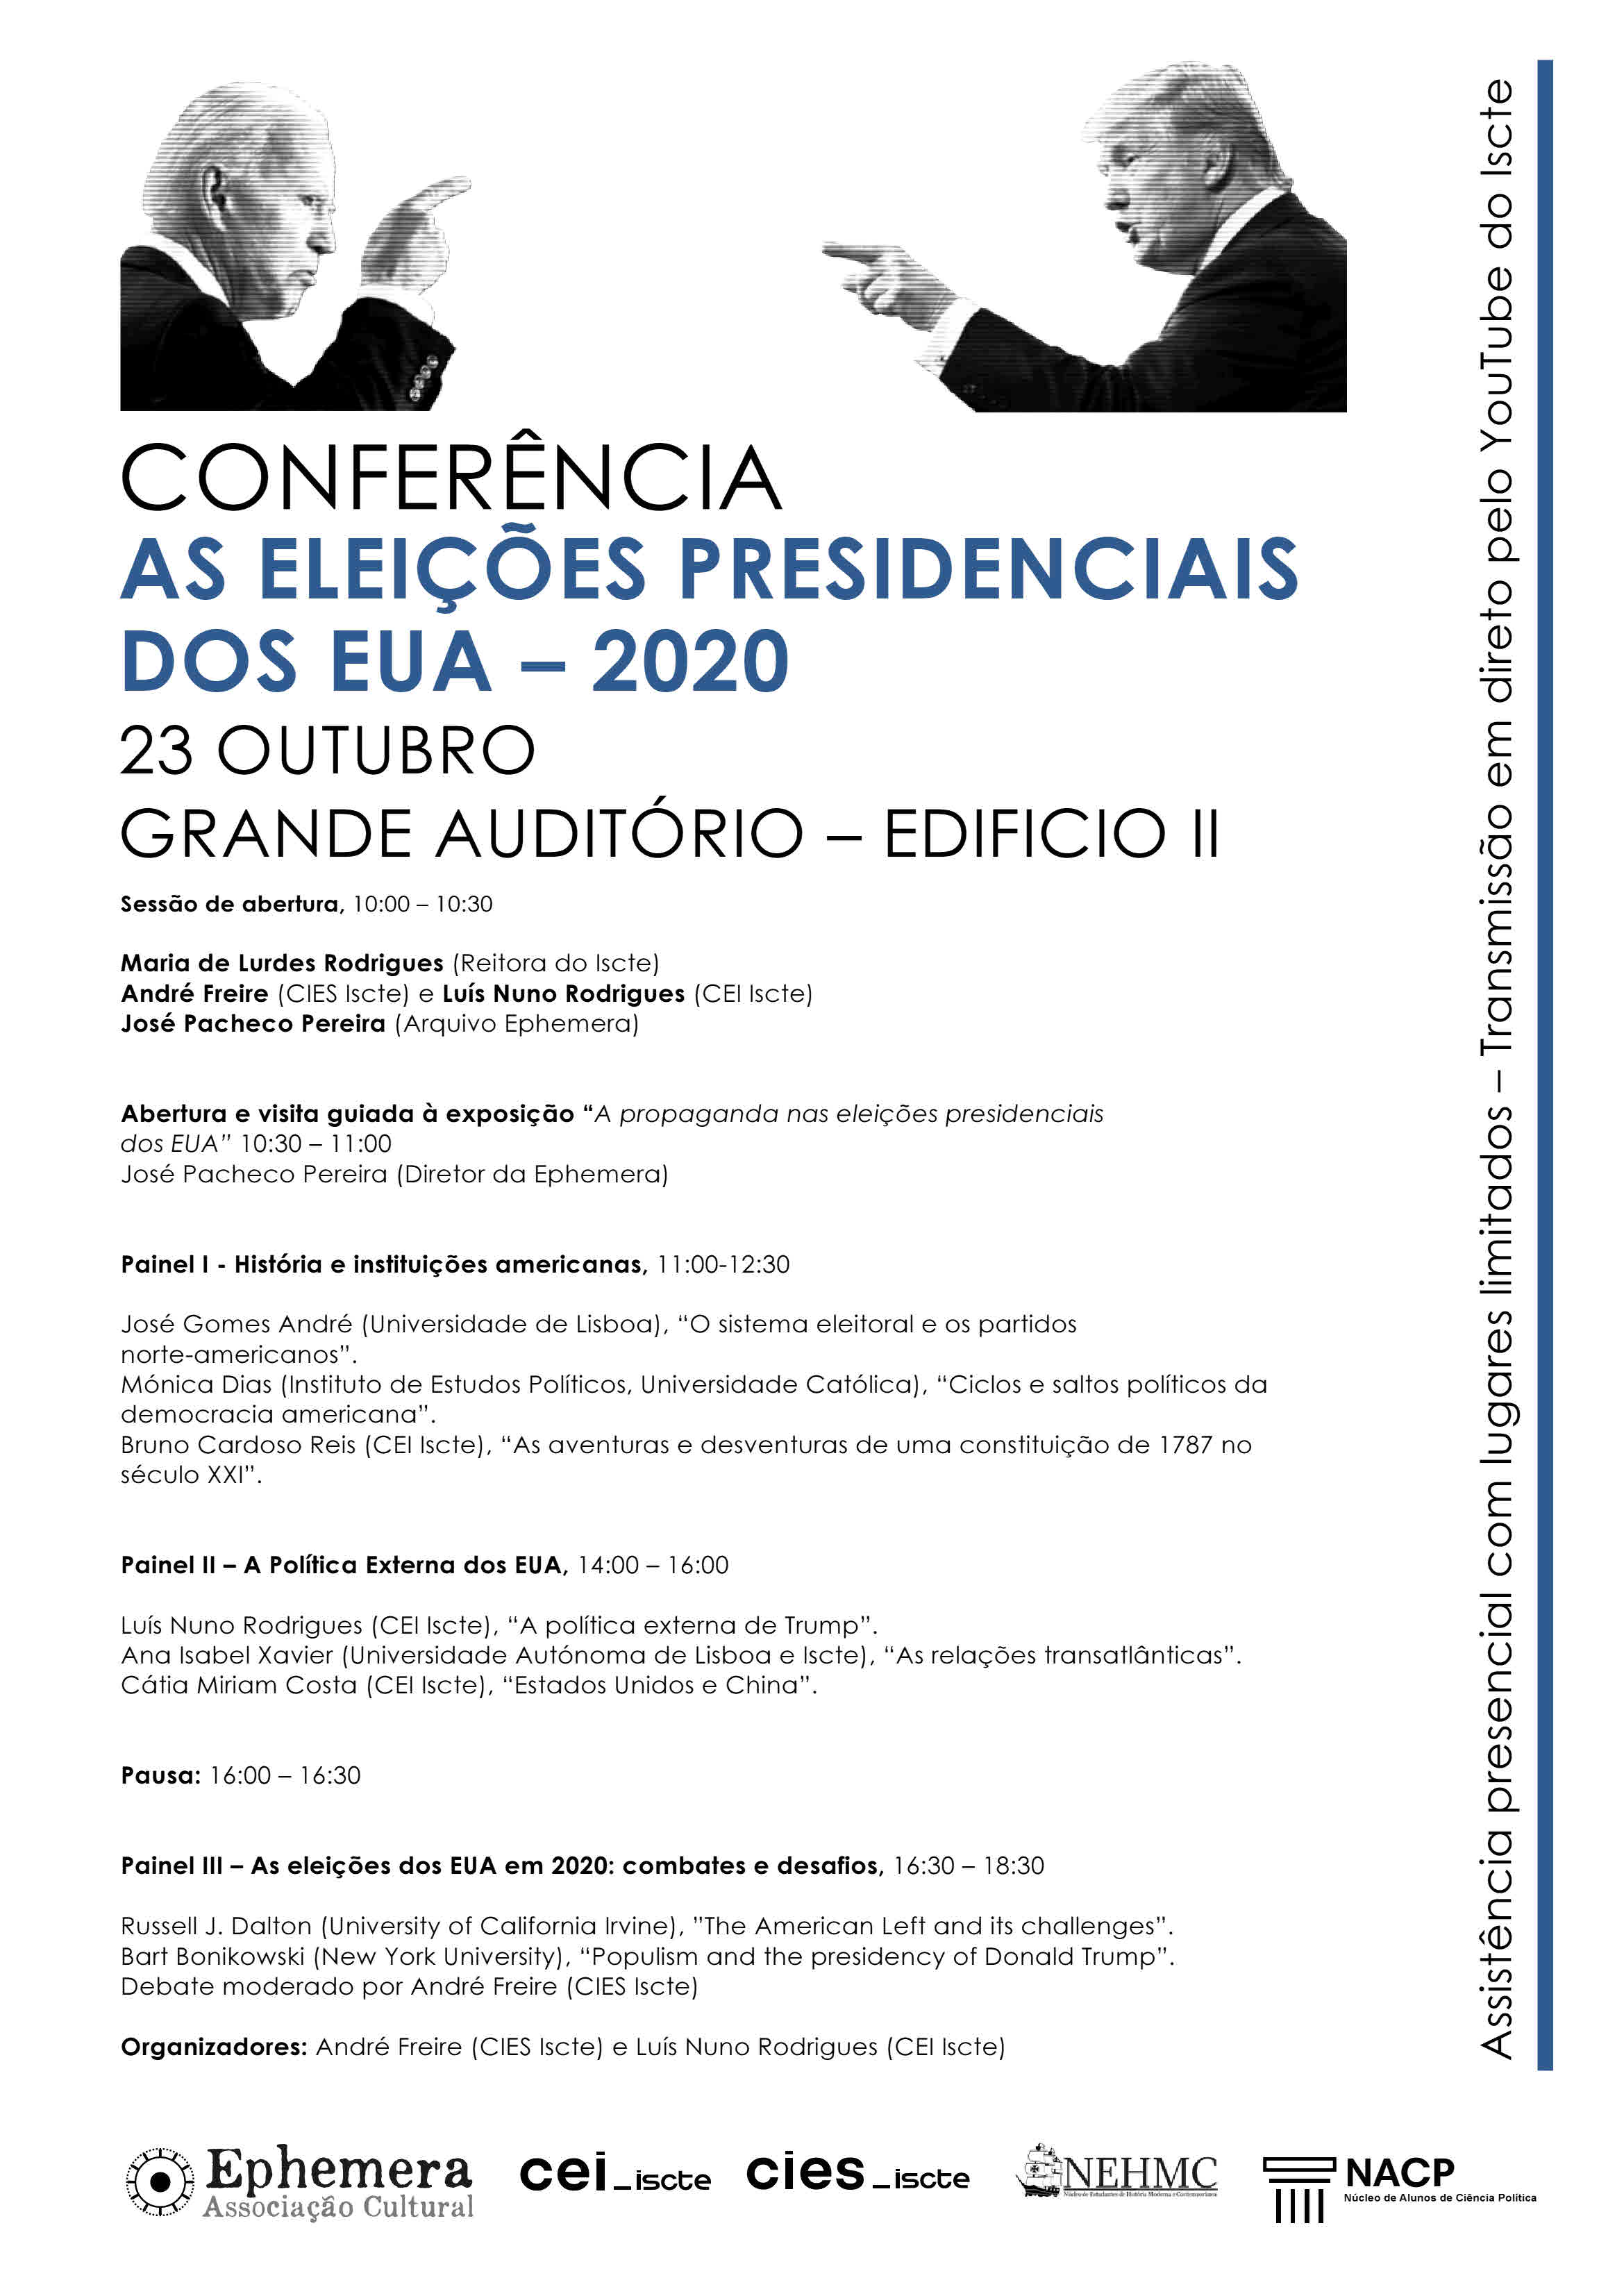 Eleicoes EUA Conferencia